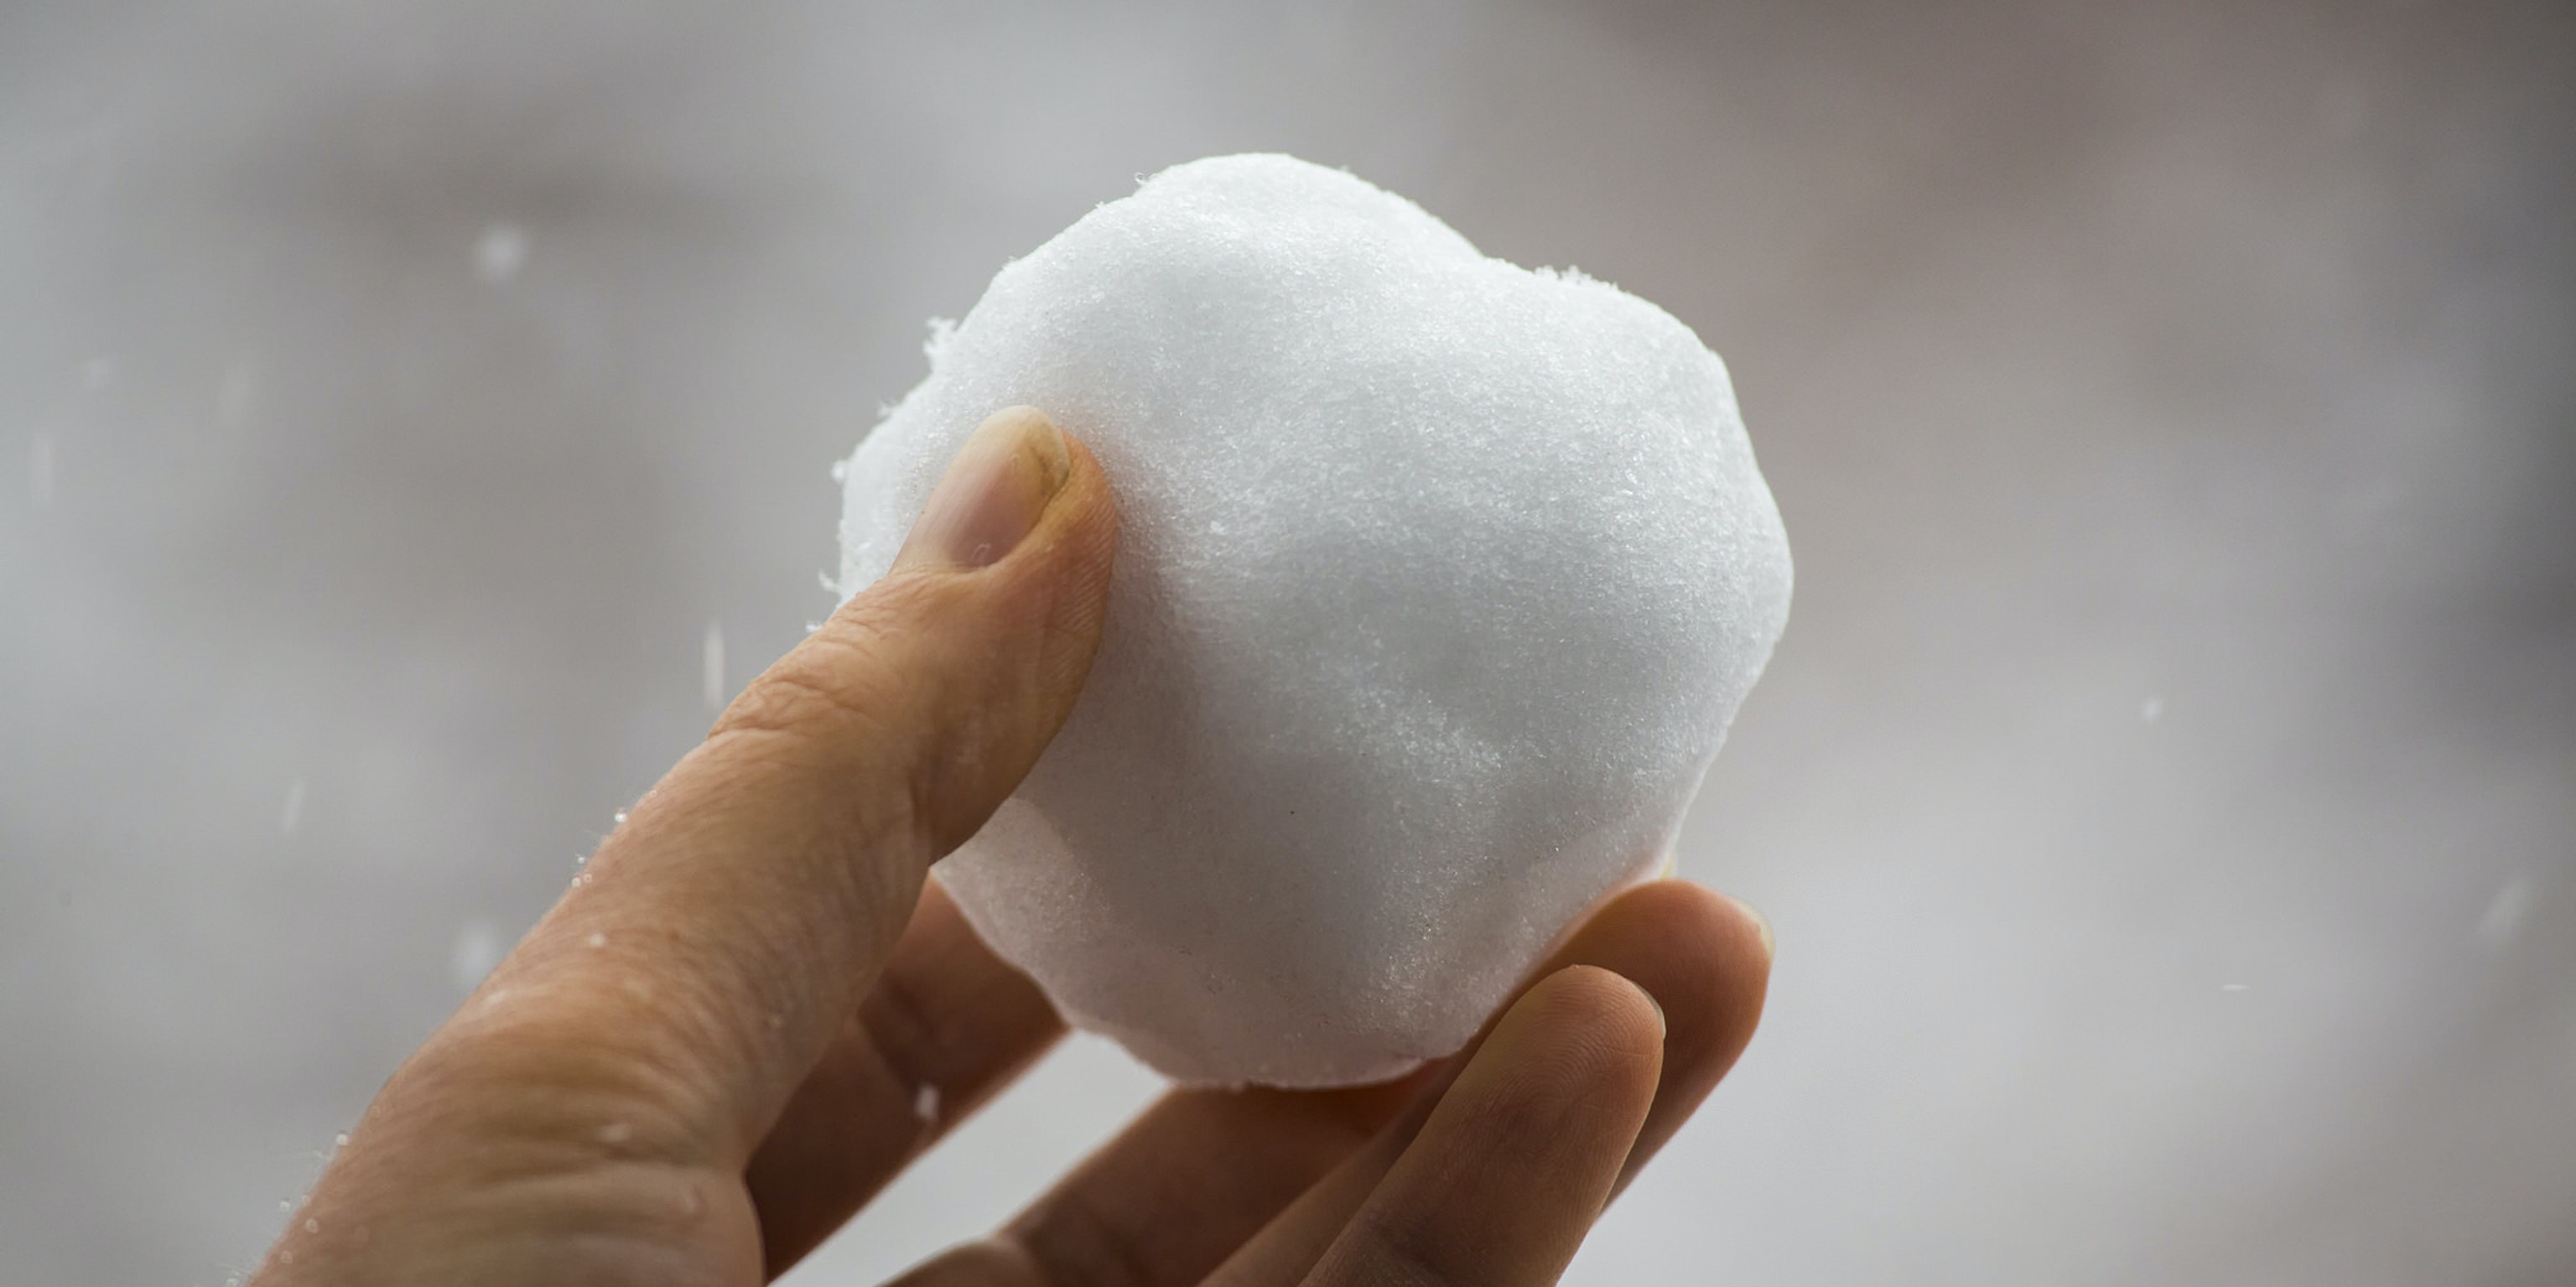 How to Make a Perfect Snowball, According to Physics